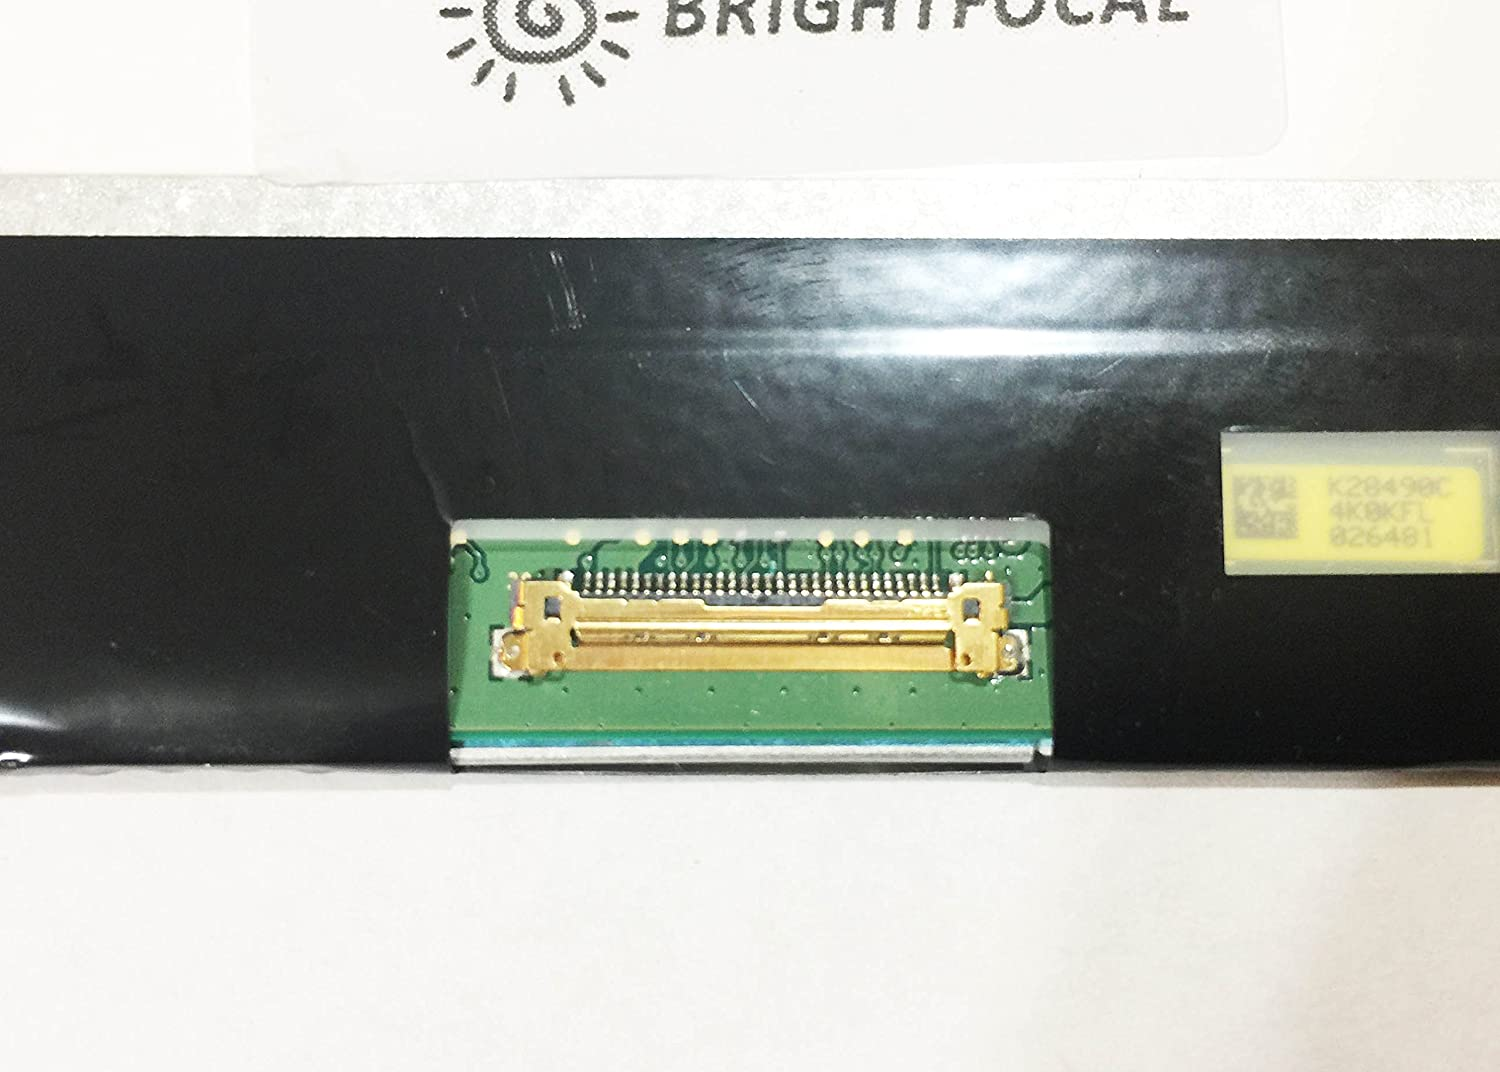 BRIGHTFOCAL New Screen for INSPIRON 15 5555 5558 5559 Series 30PIN Non-Touch 15.6 HD WXGA EDP Slim LED Replacement LCD Screen Display